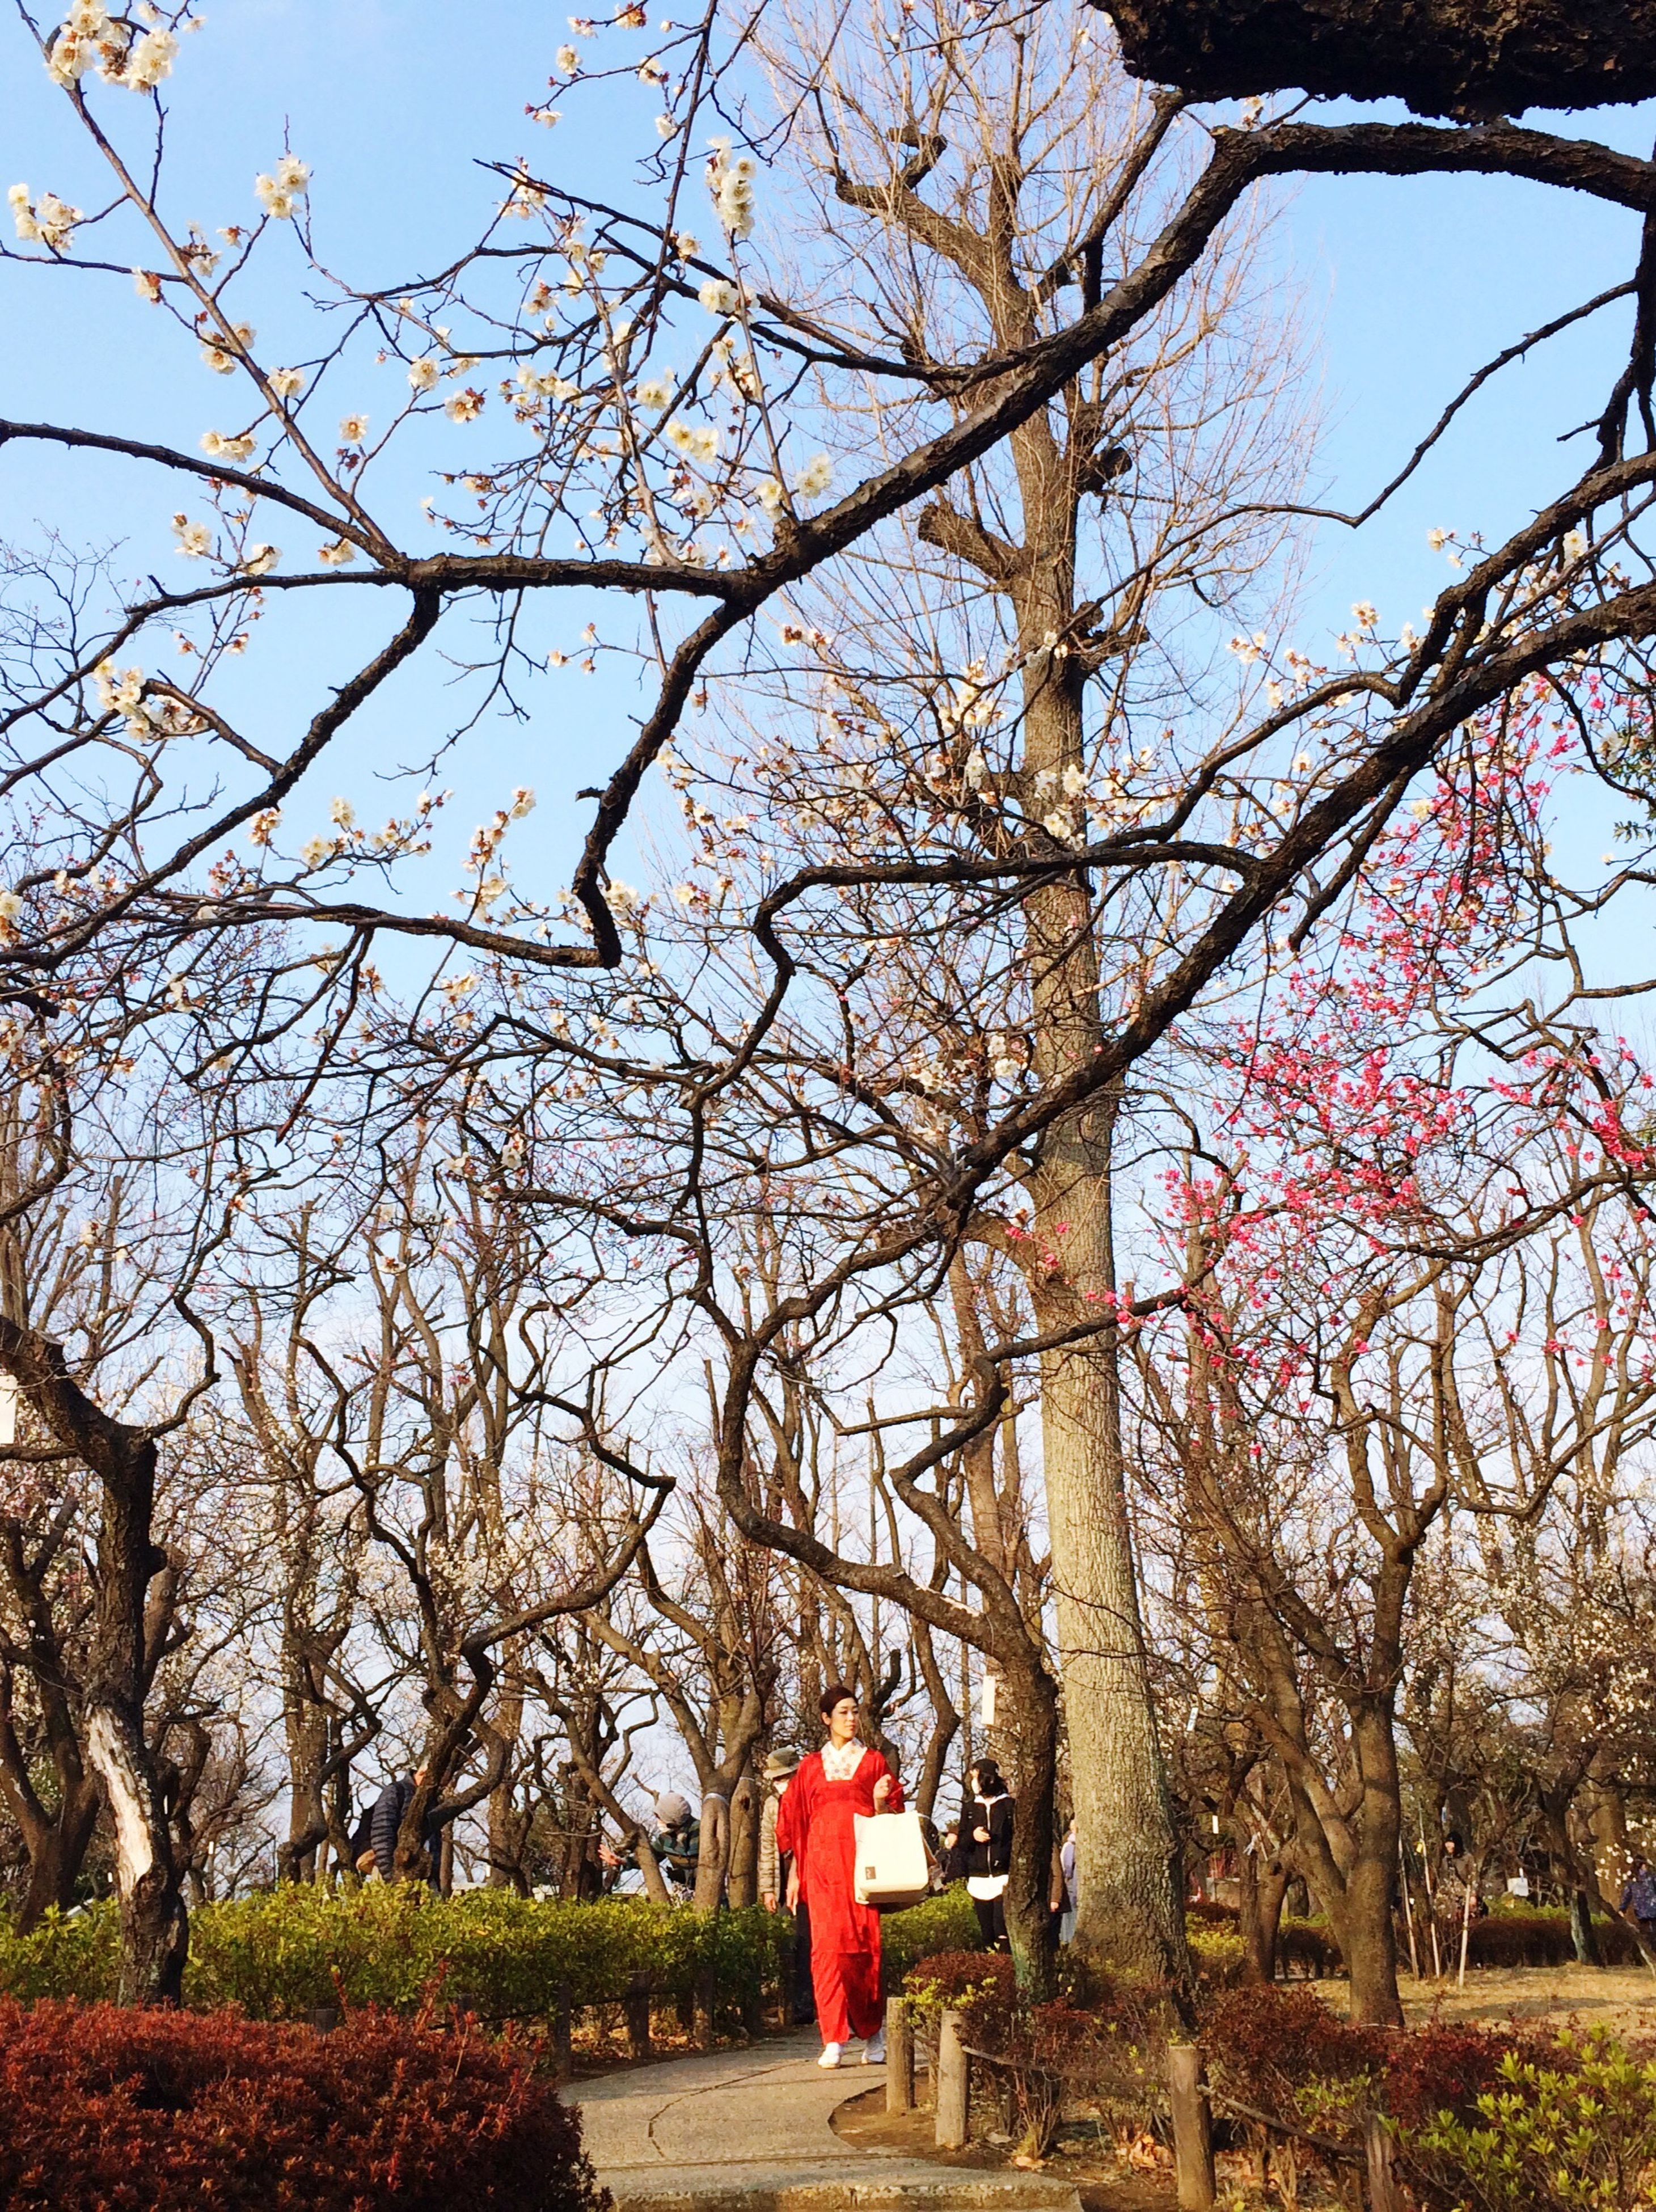 tree, lifestyles, rear view, leisure activity, full length, person, casual clothing, branch, standing, walking, girls, flower, bare tree, men, childhood, sky, holding, growth